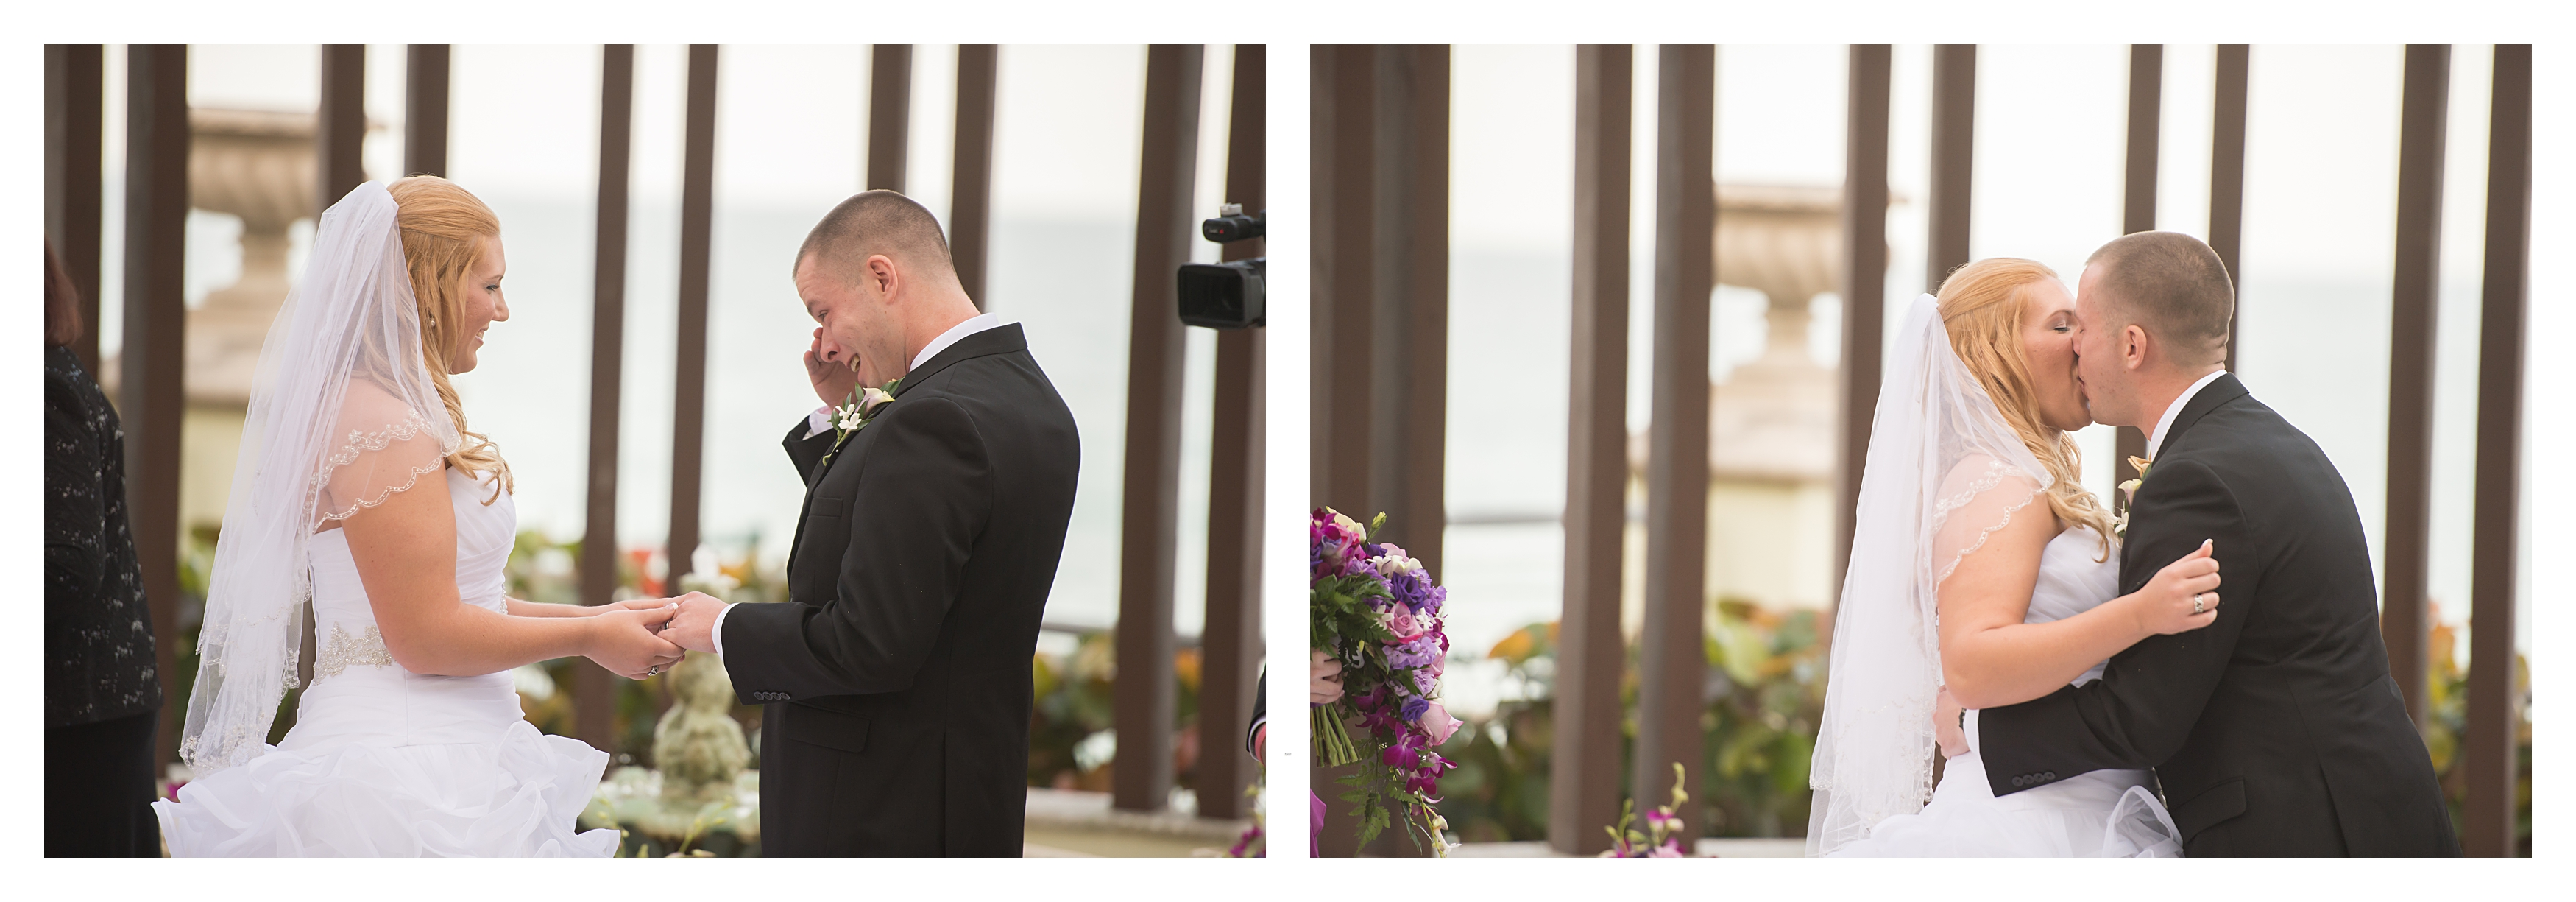 Vero Beach Wedding_0019